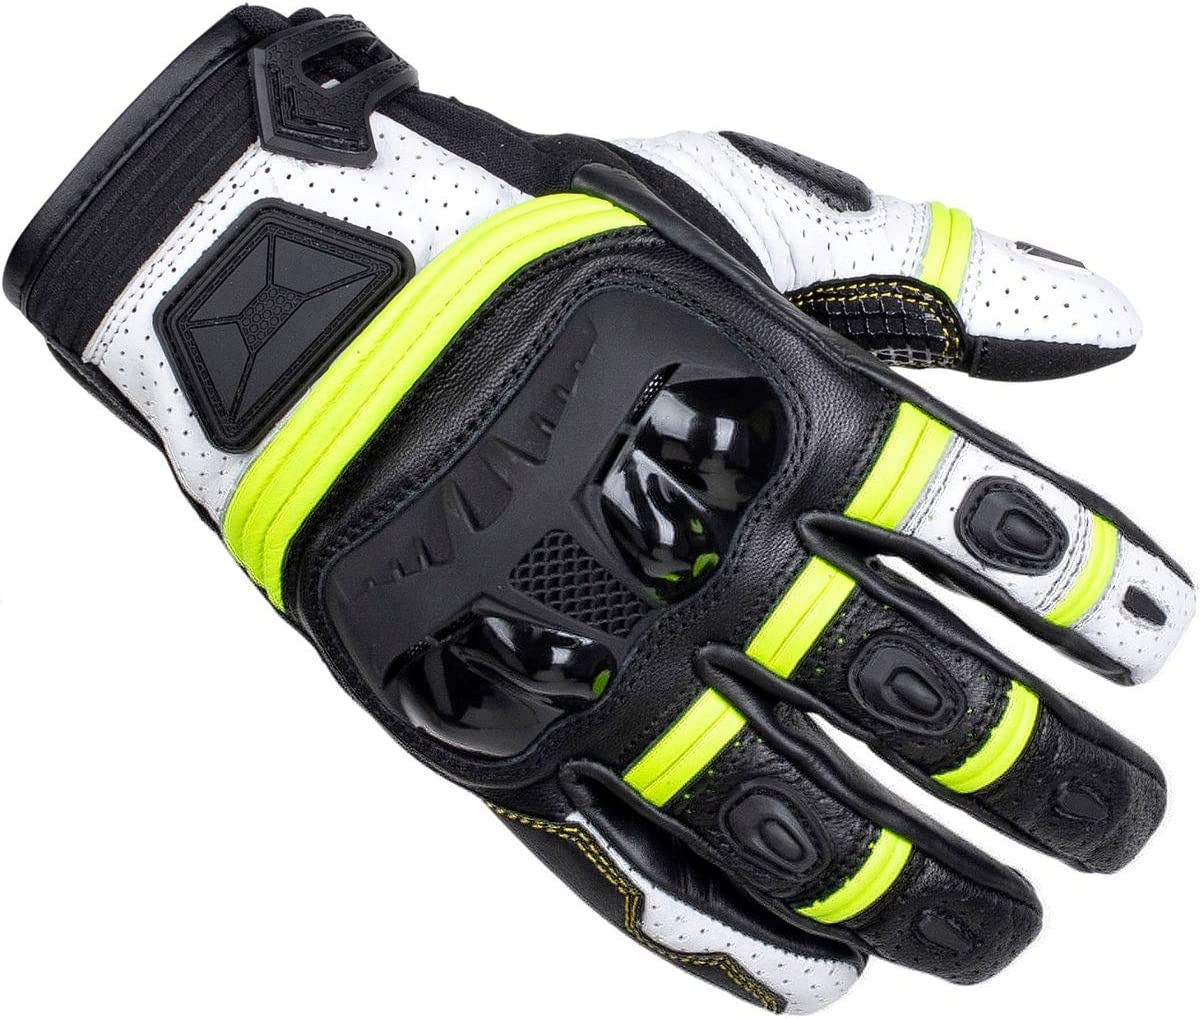 Black//White Cortech Mens Speedway Chicane St Glove Md